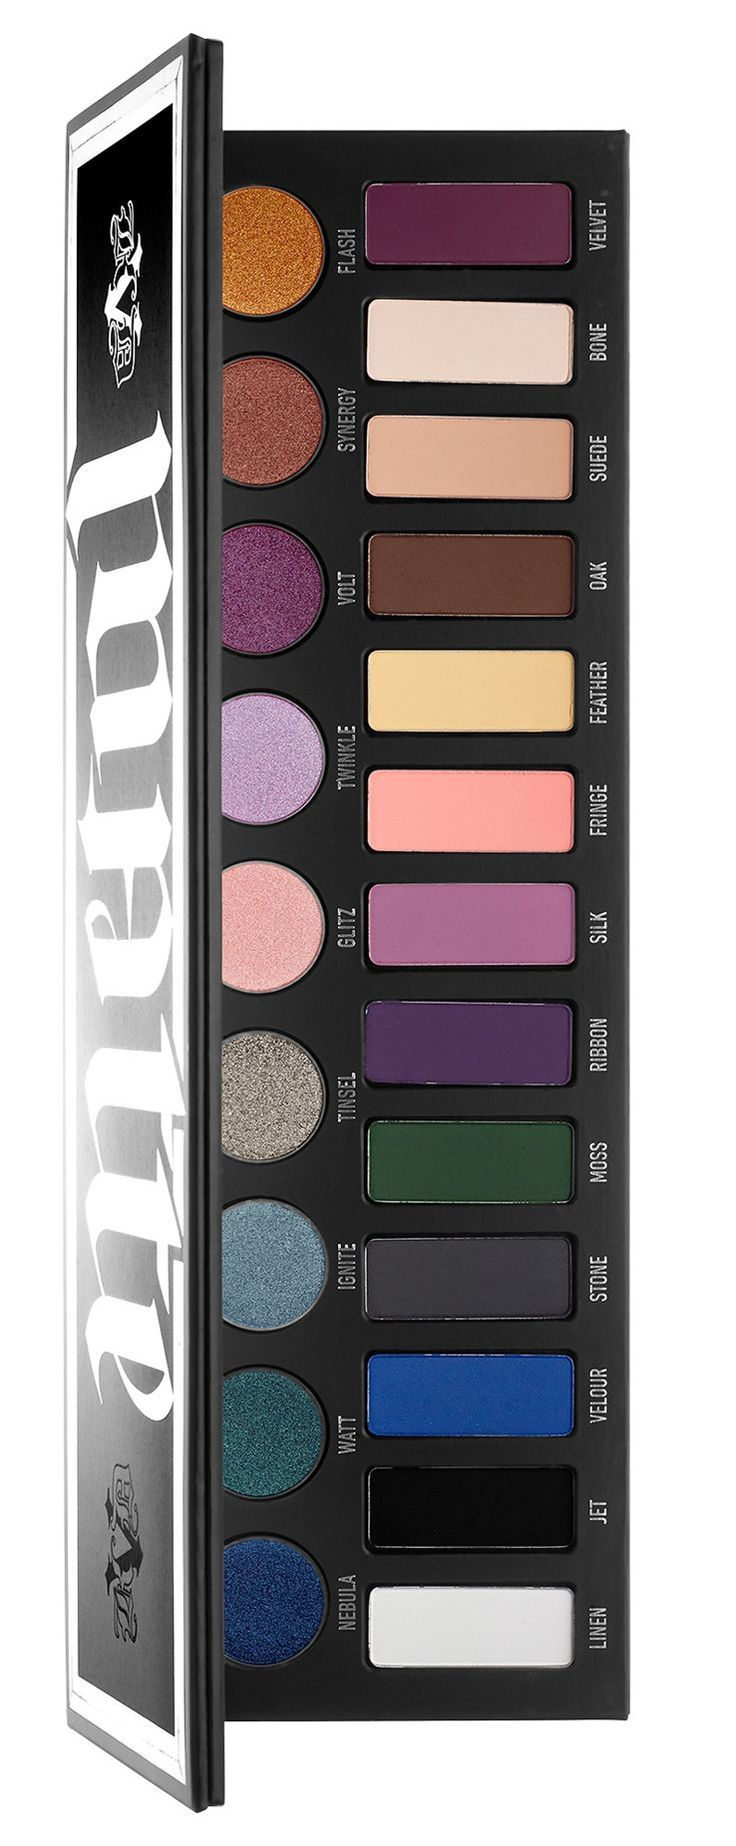 The Kat Von D MetalMatte Eyeshadow Palette ($60) is a new eyeshadow palette that's available for Holiday 2016 which includes a selection of metallic and ma. #cosmetics #makeup #beauty @ajh71815